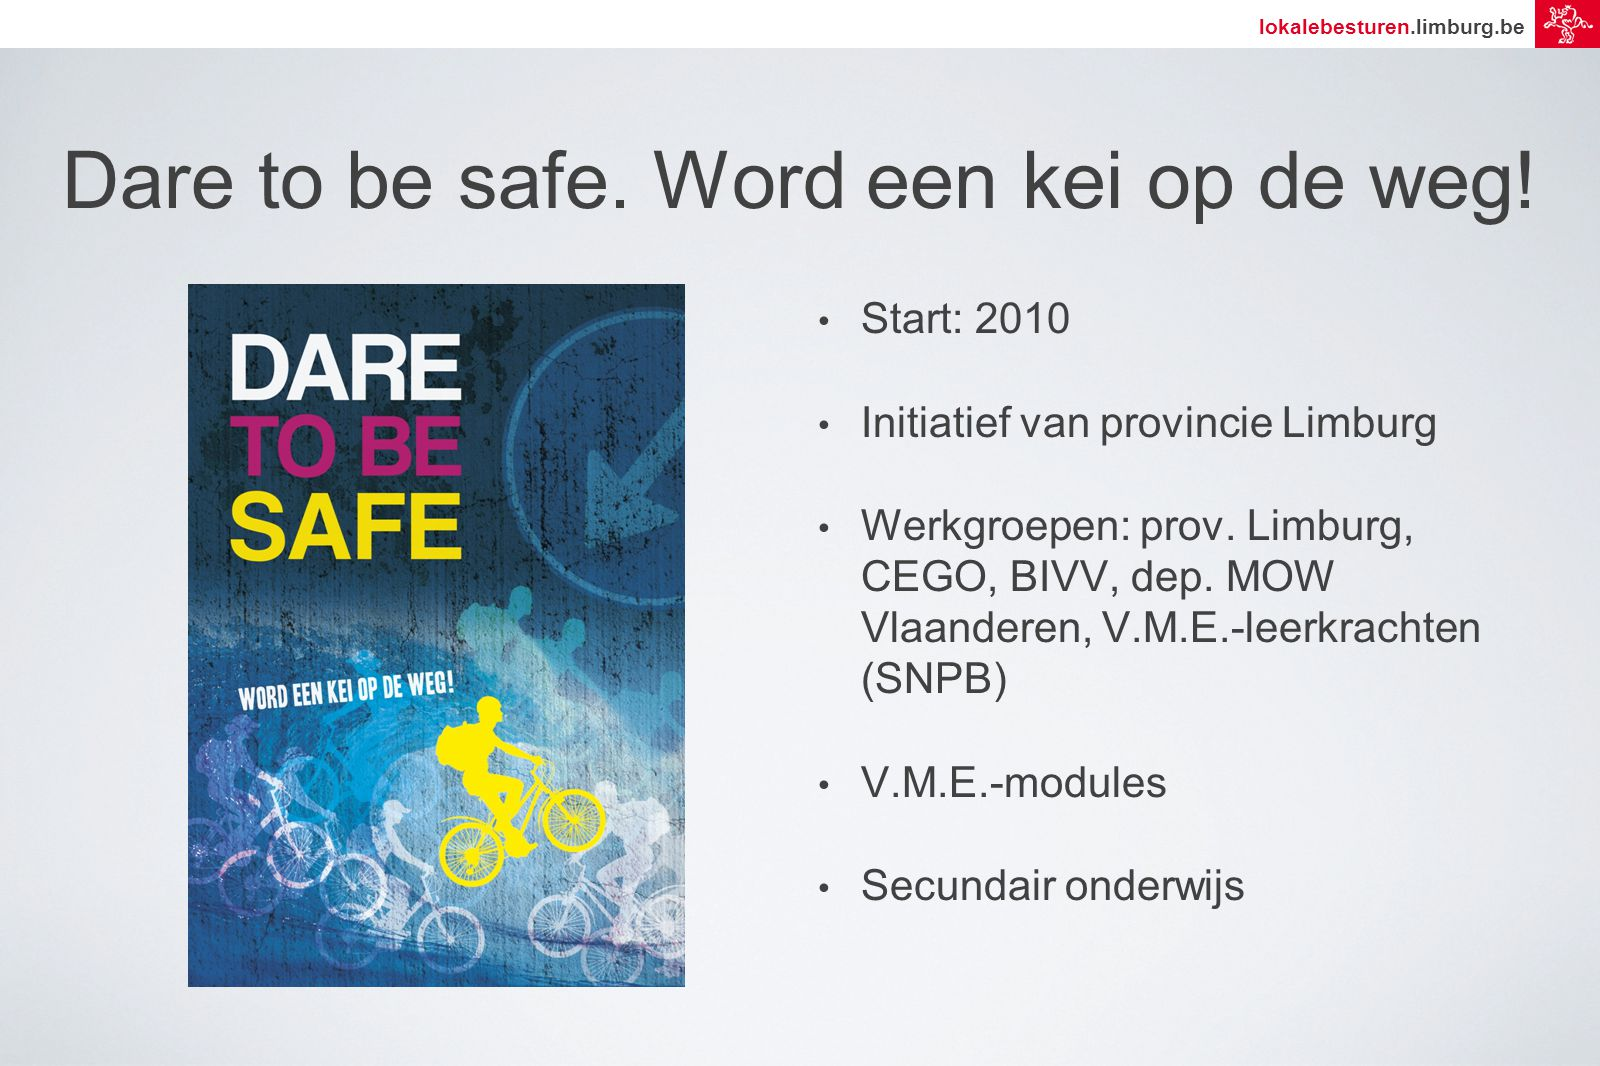 lokalebesturen.limburg.be Dare to be safe.Word een kei op de weg.